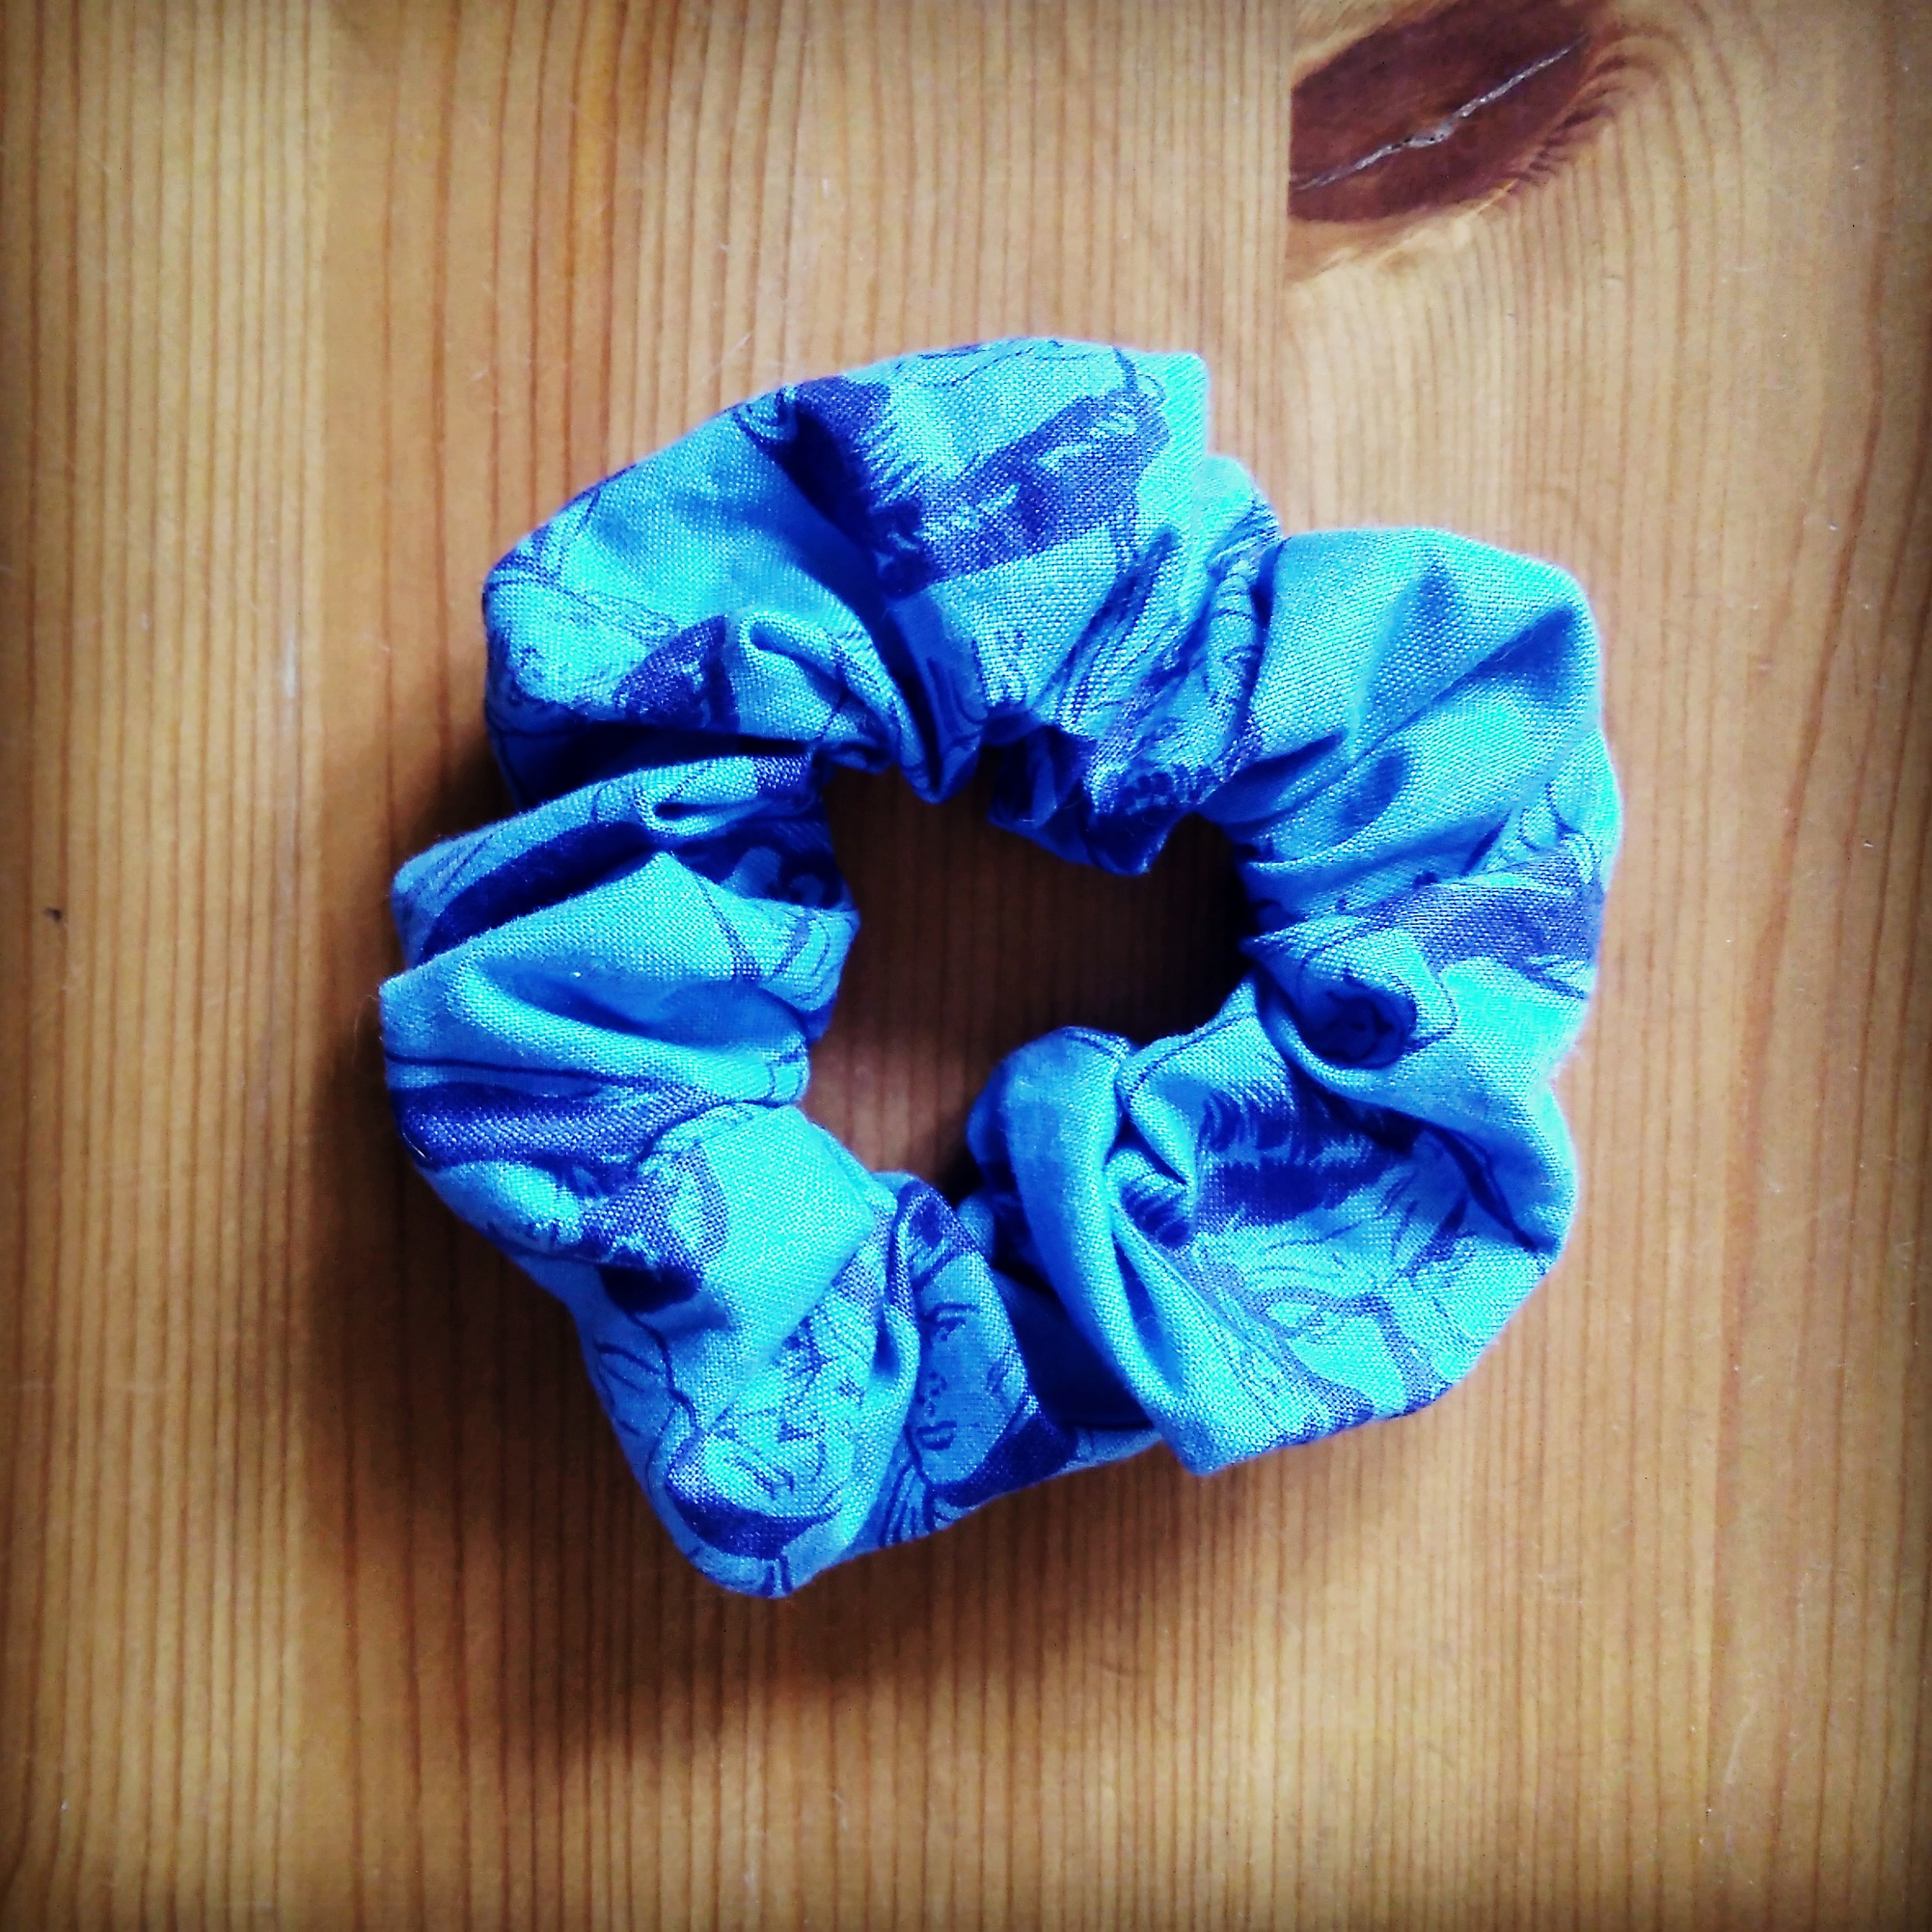 Star Trek Scrunchie